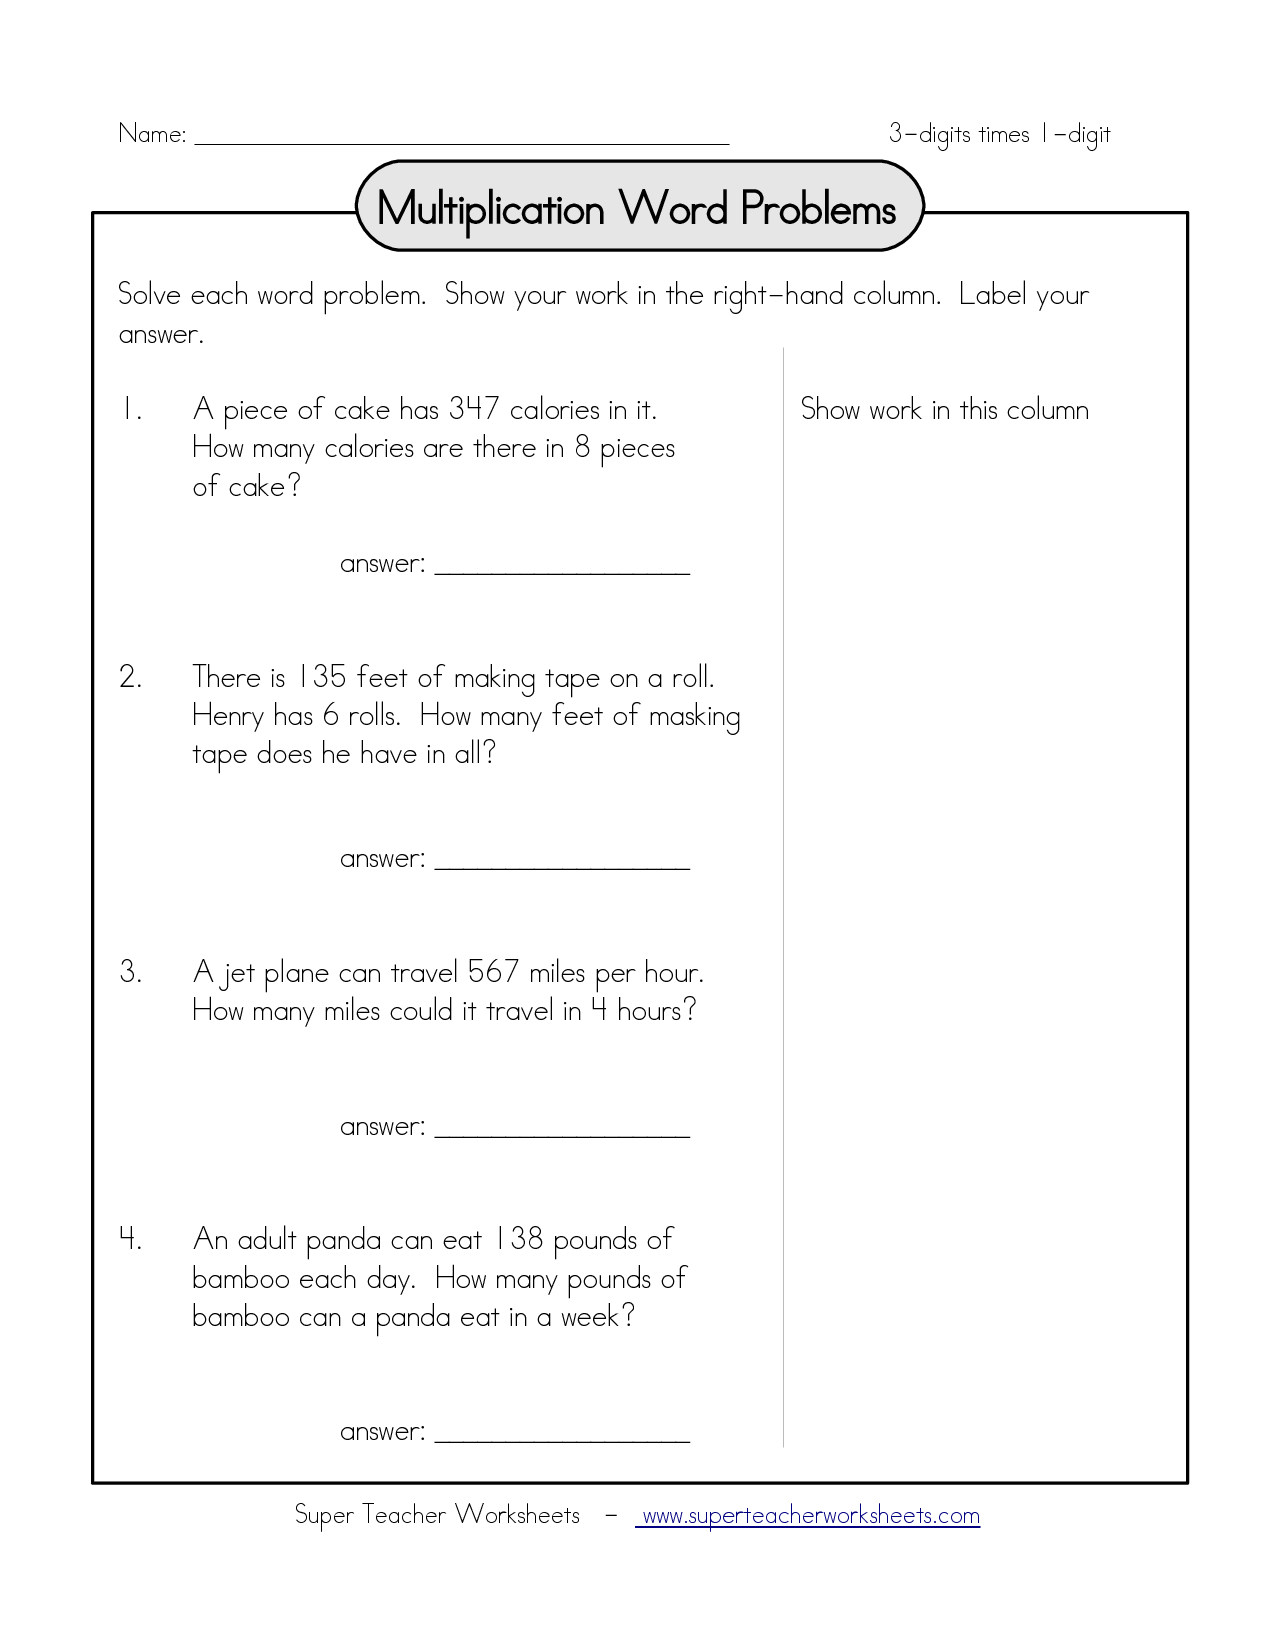 medium resolution of Multiplication Word Problems Name 3 digits   Word problems